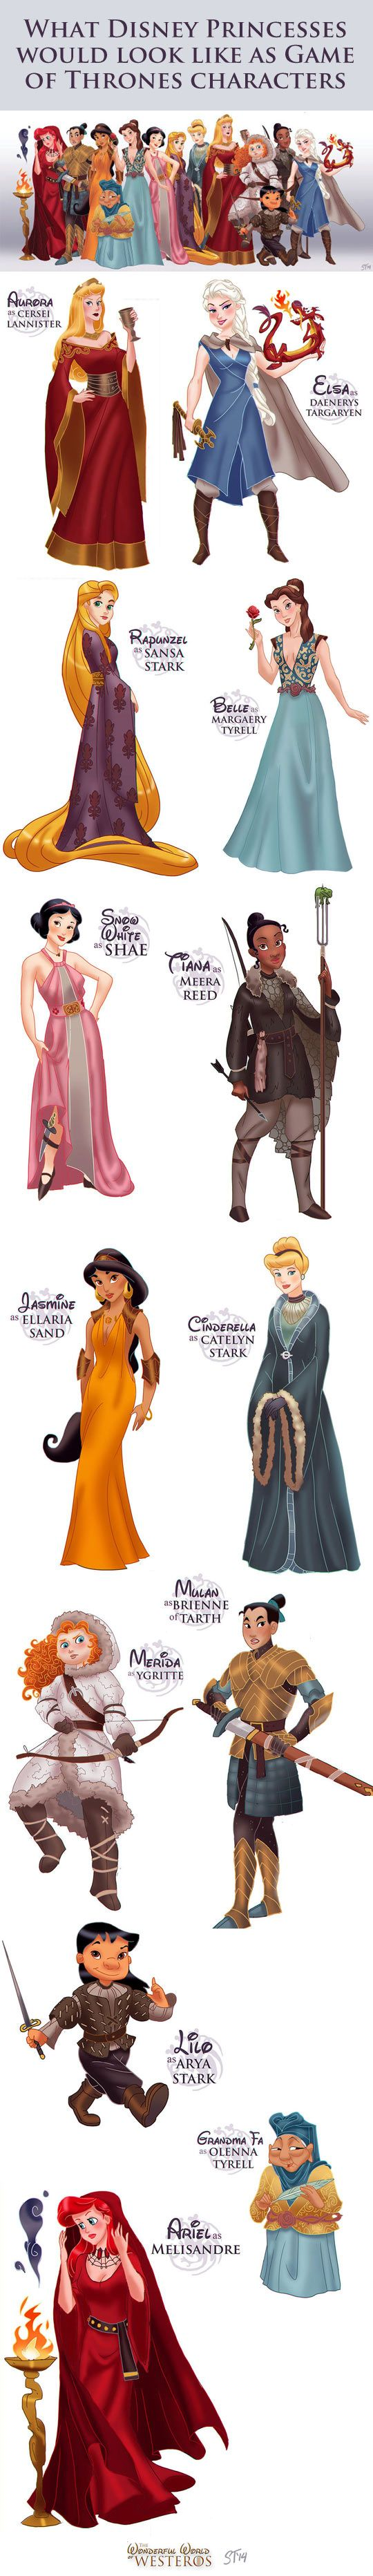 funny-Disney-Princesses-GOT-characters